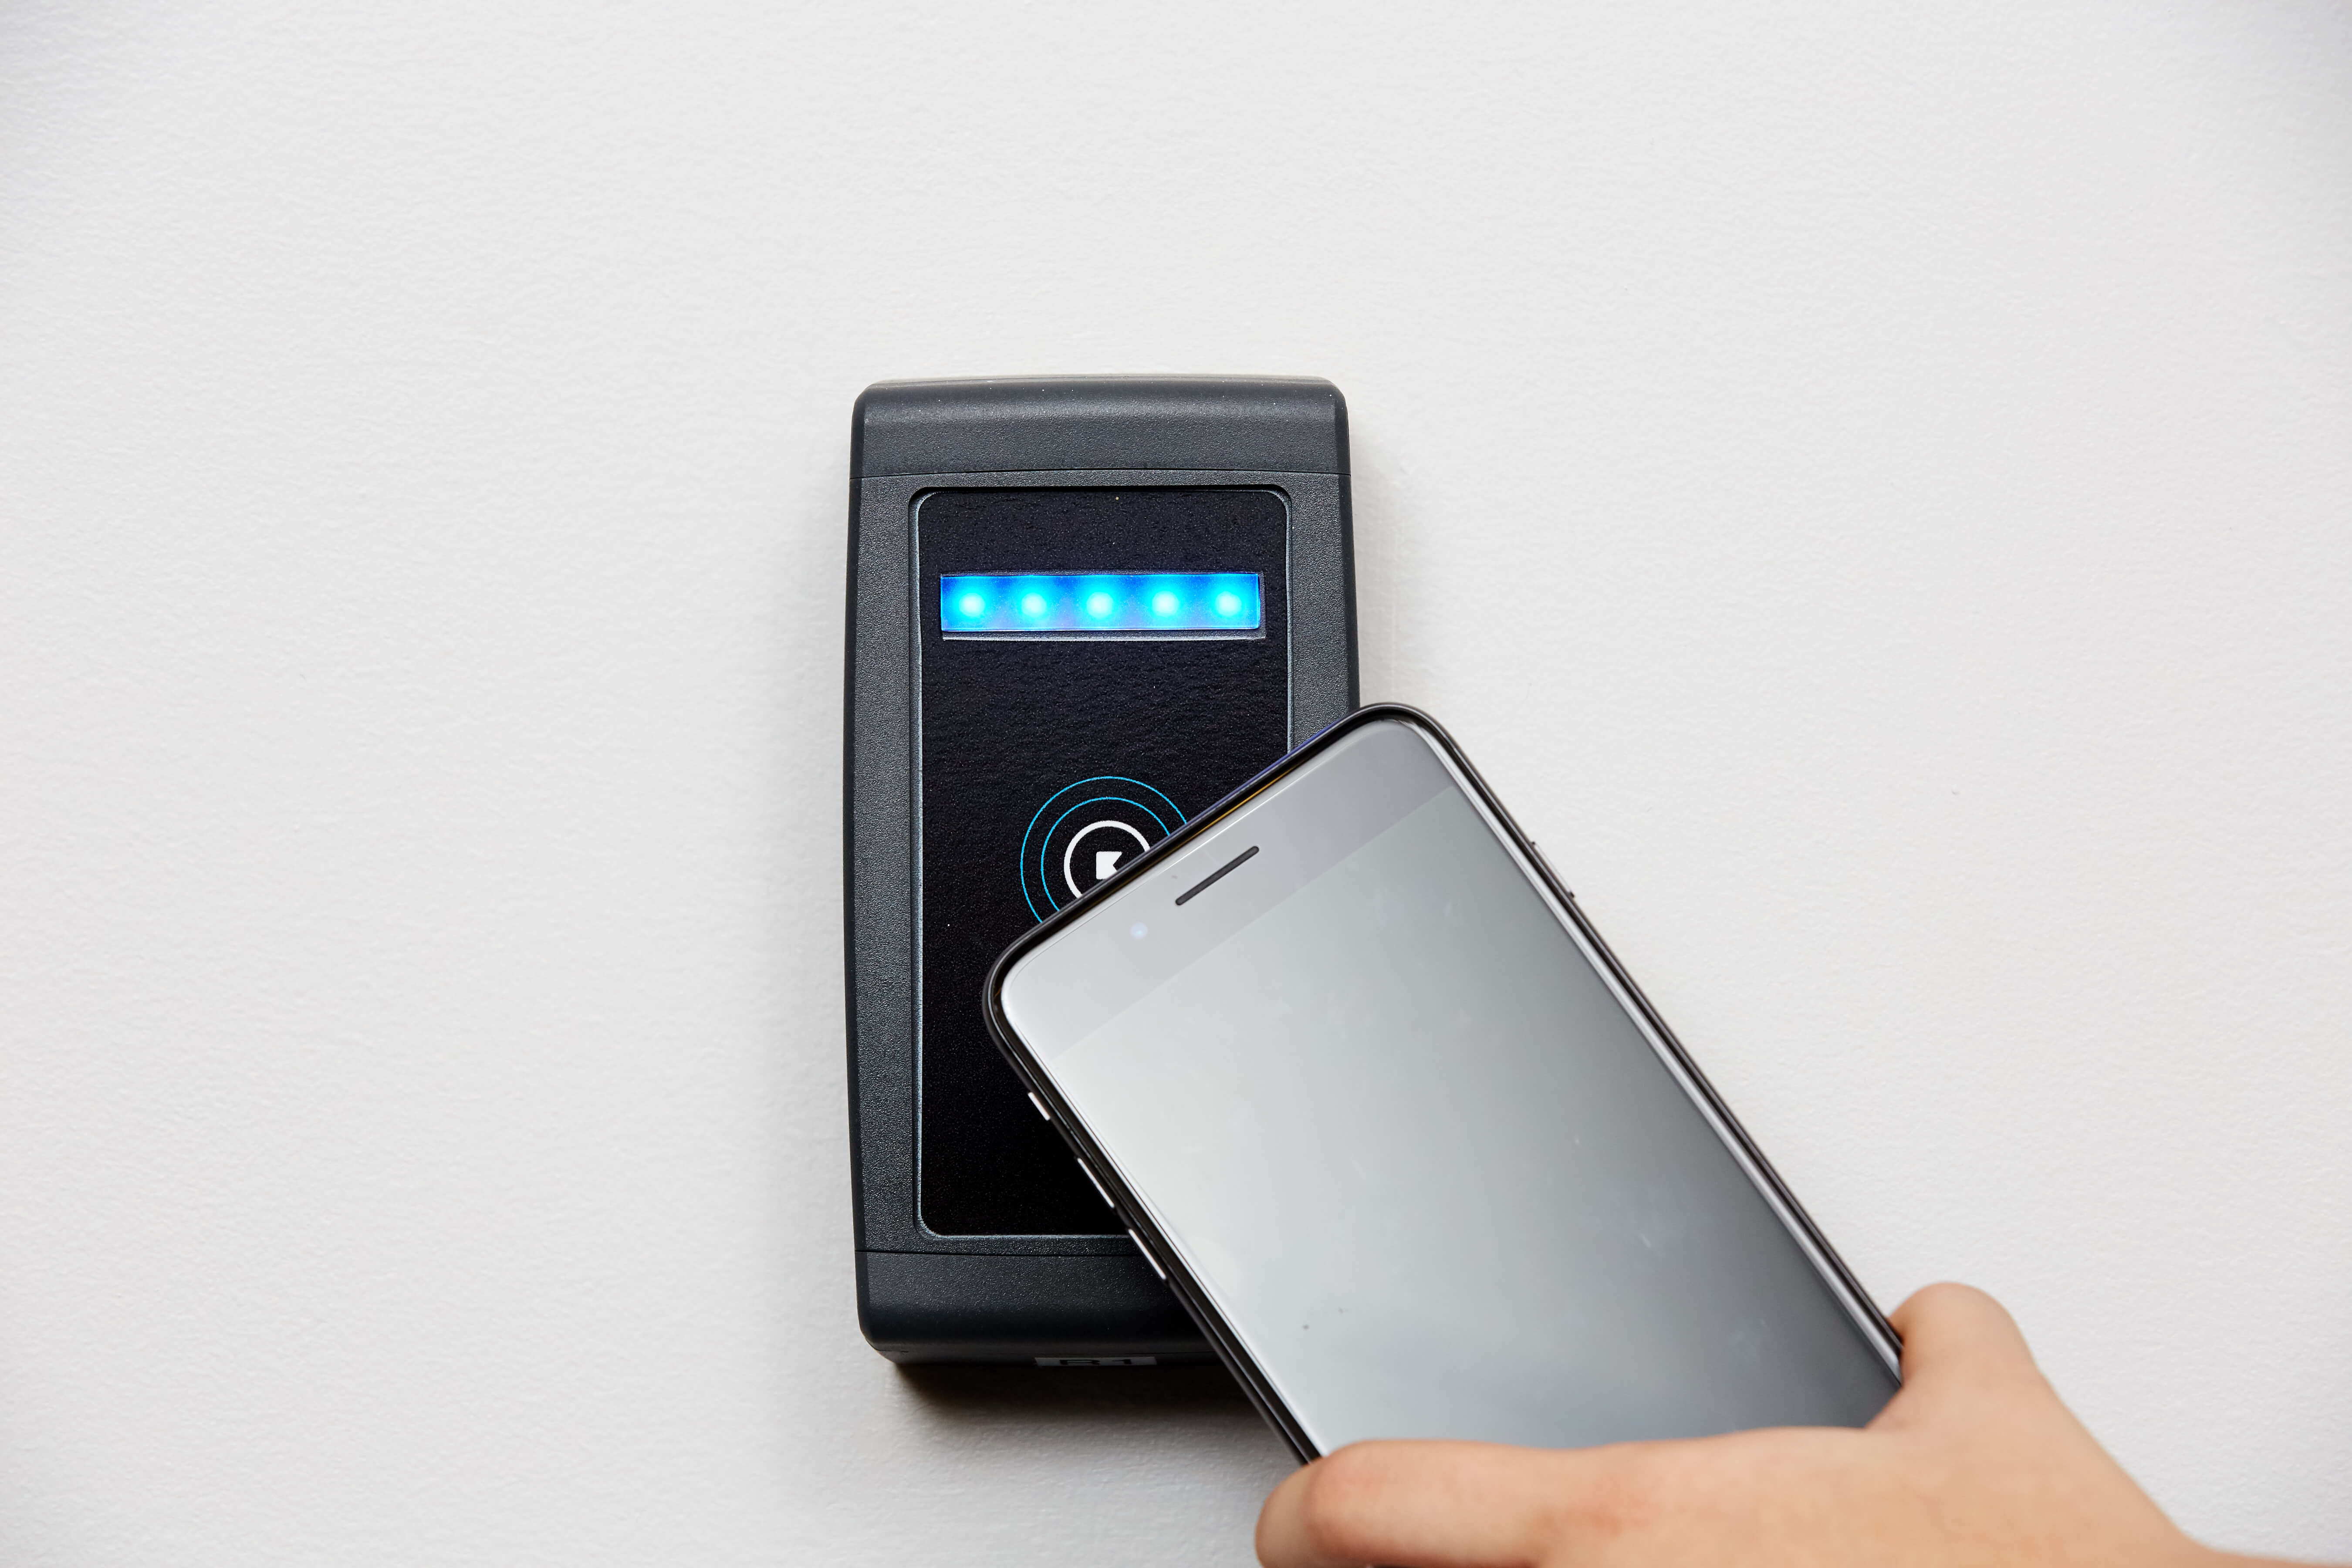 Kisi mobile based access control system